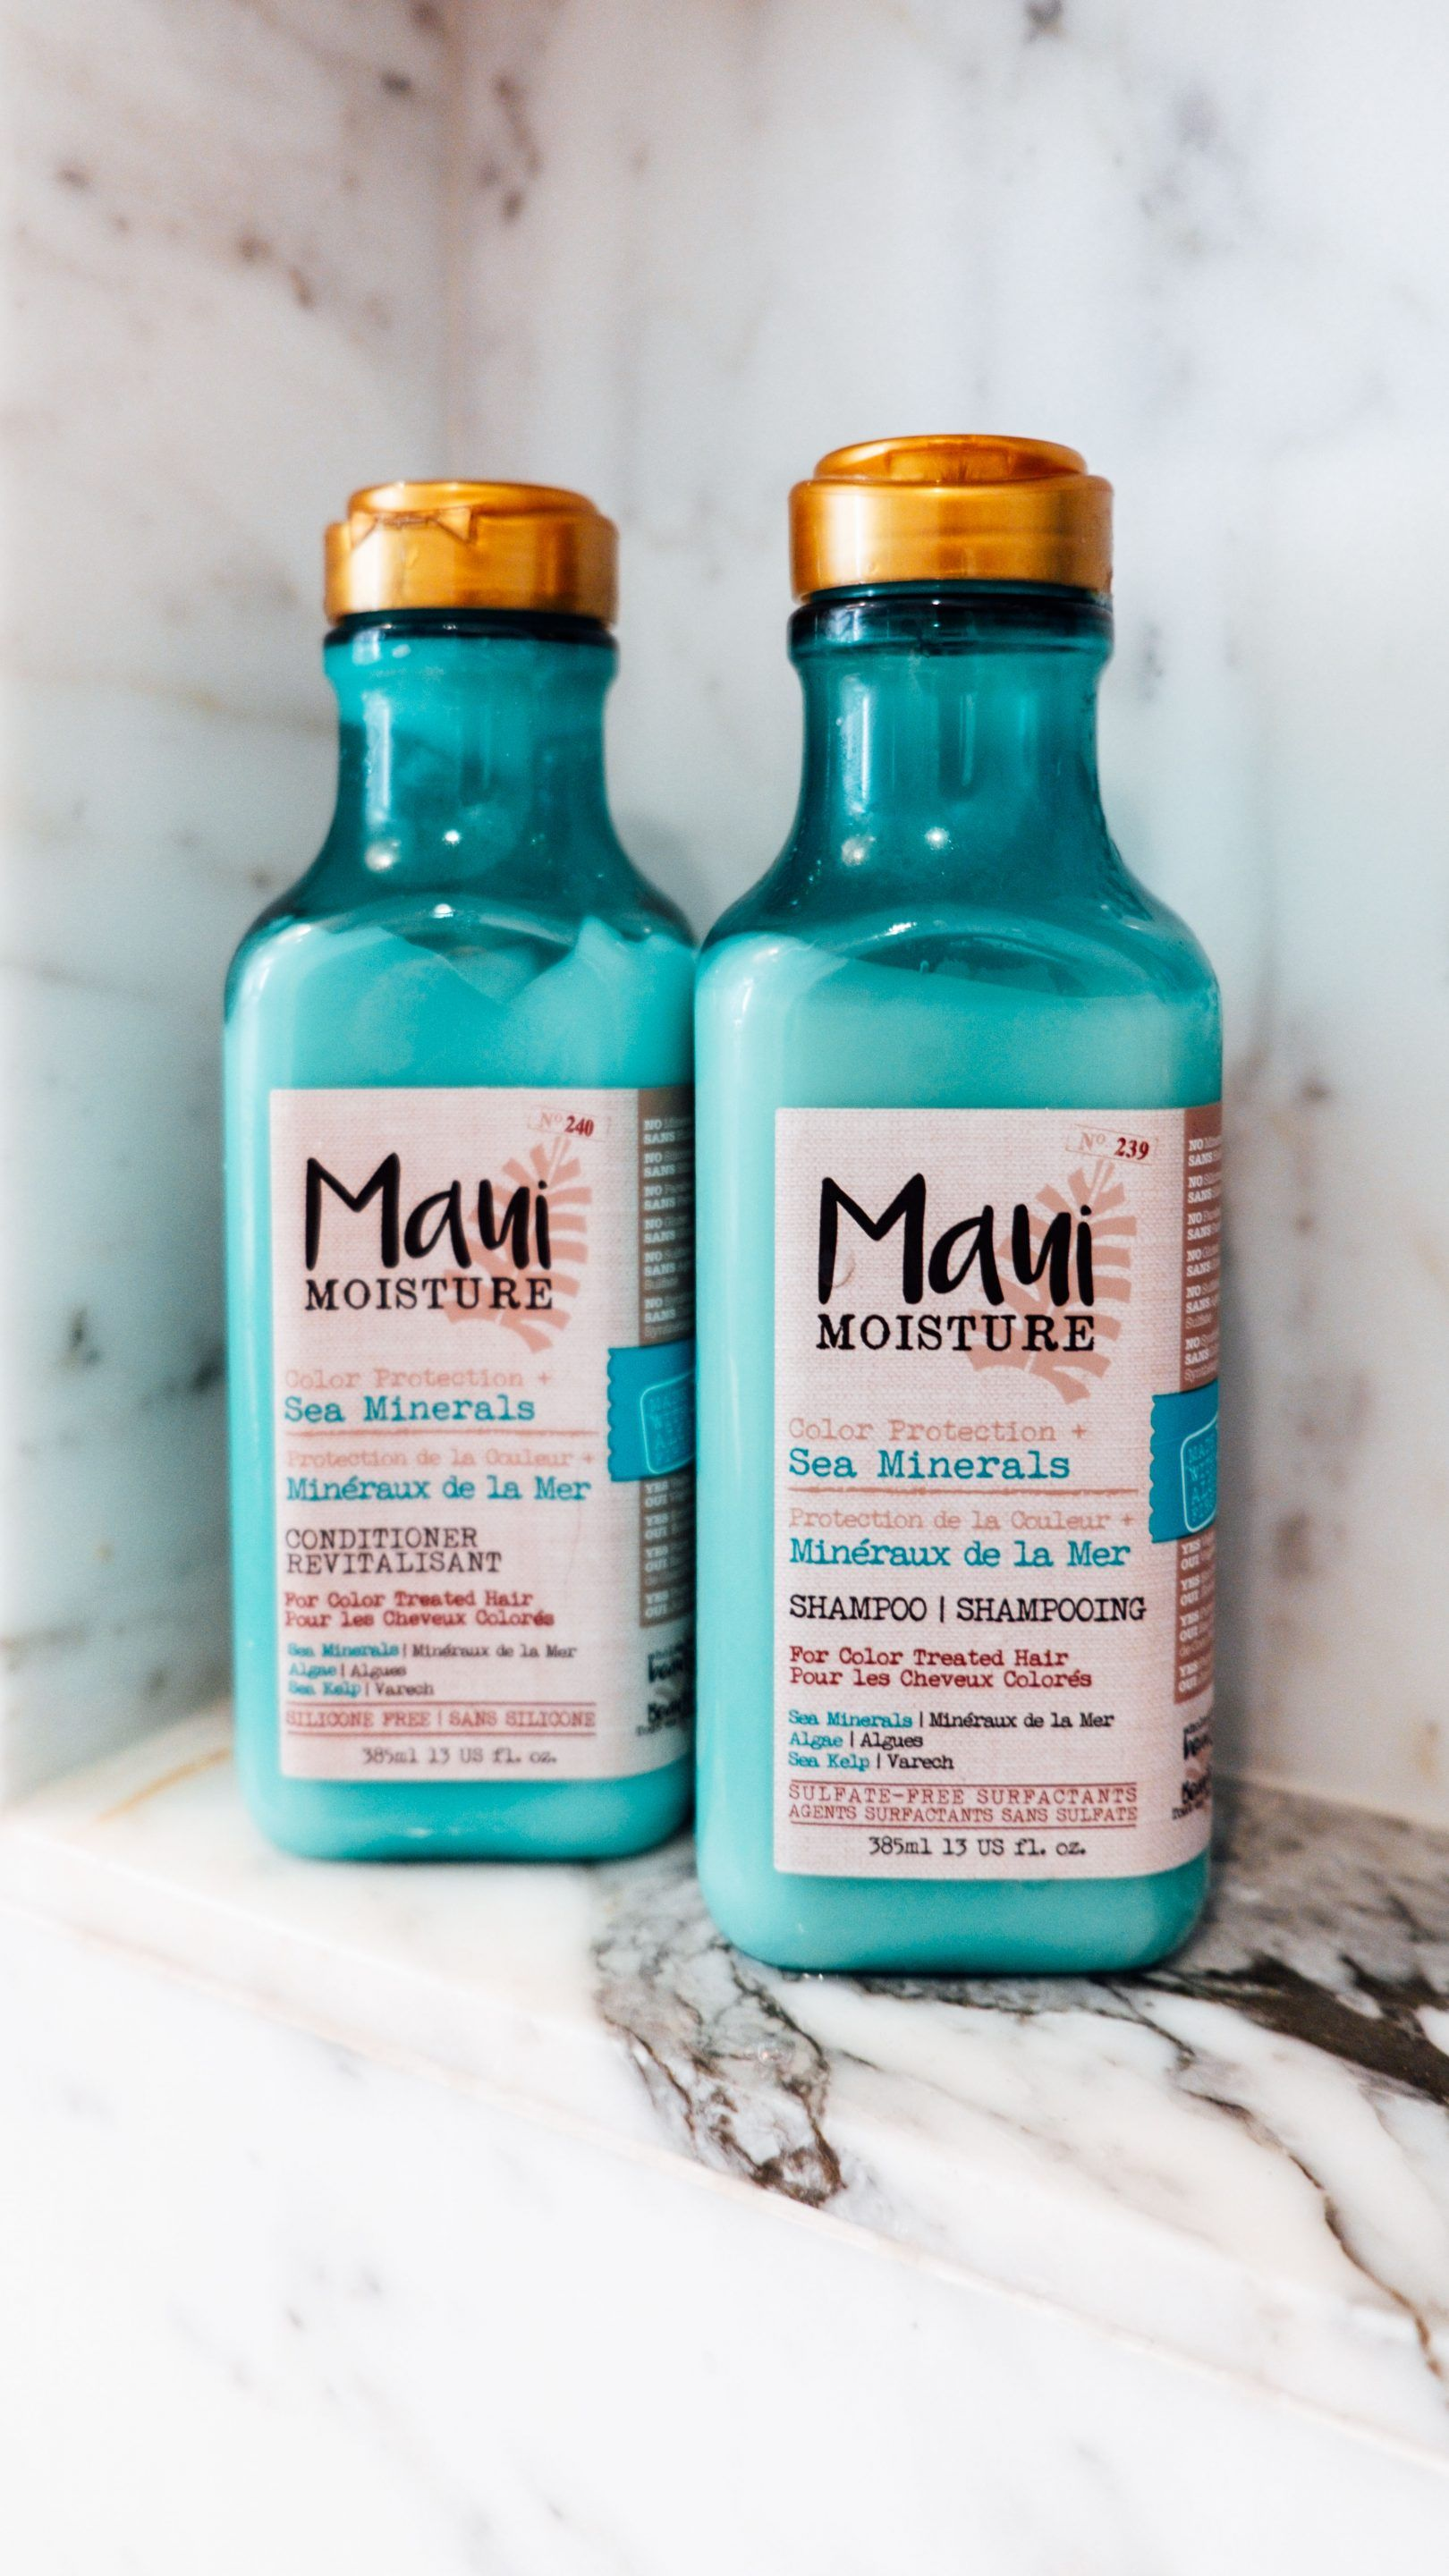 Maui Moisture Sea Minerals The Maui Moisture Sea Minerals Shampoo and Conditioner